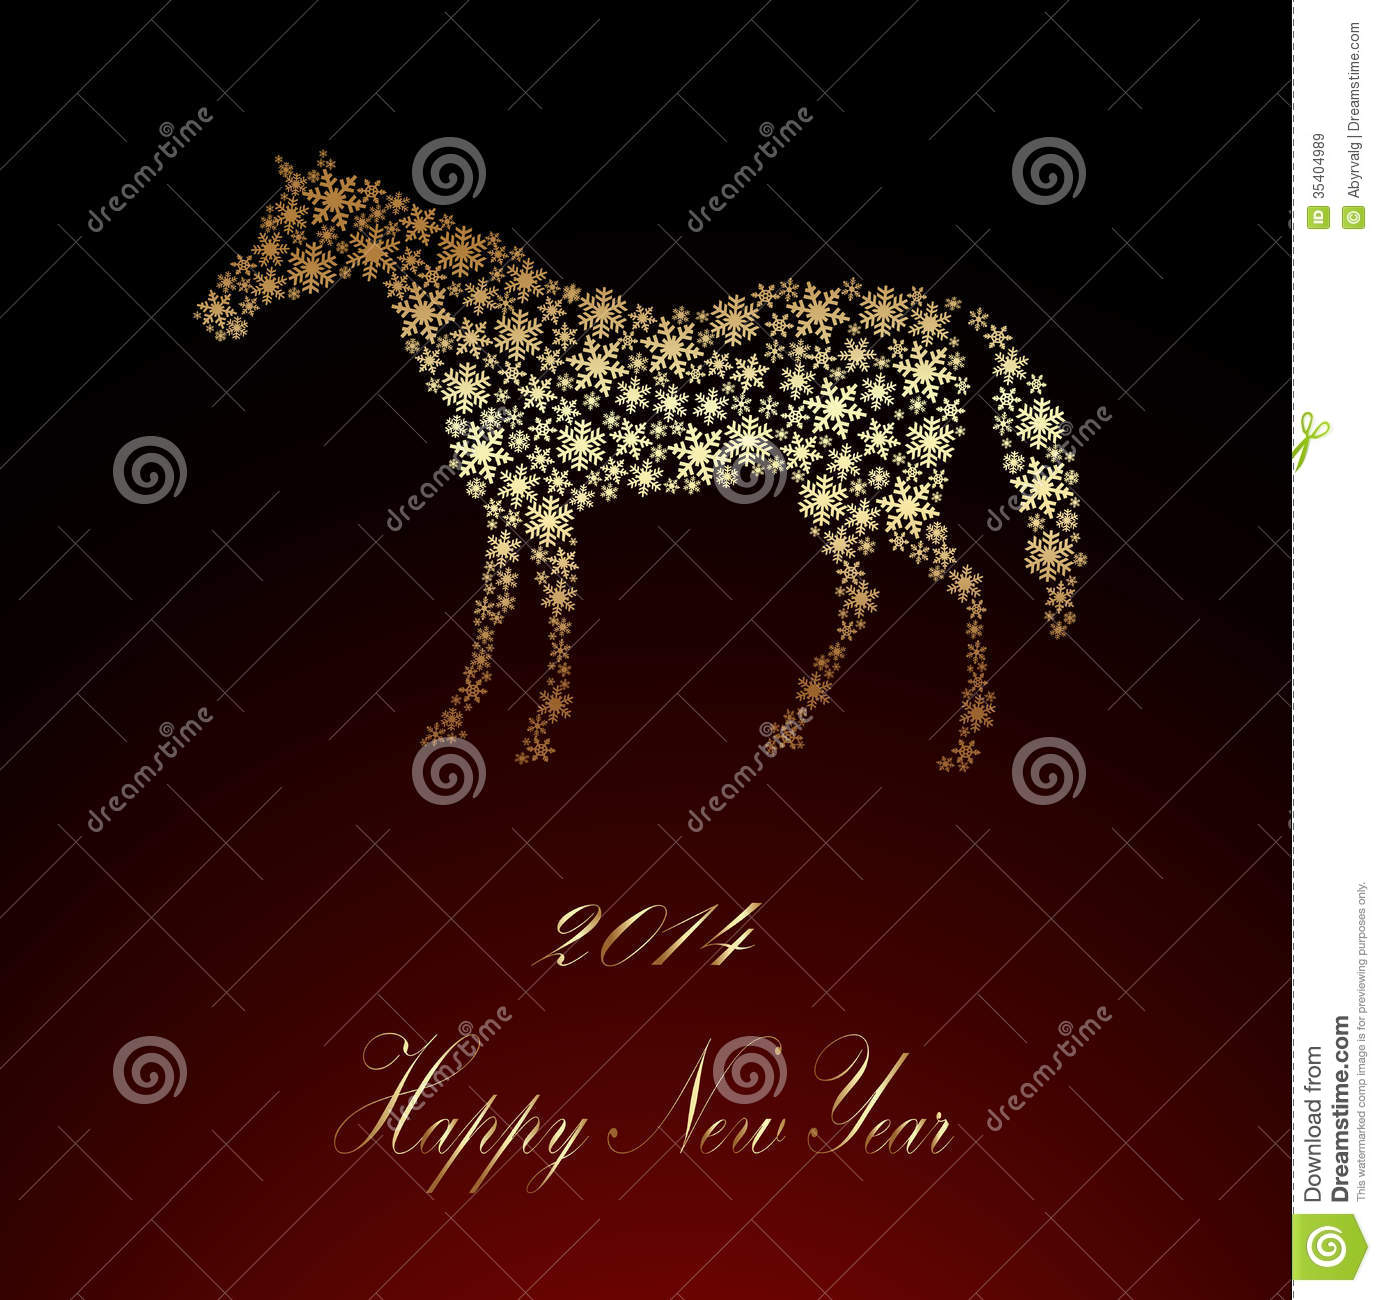 Happy New Year Horse Images 10